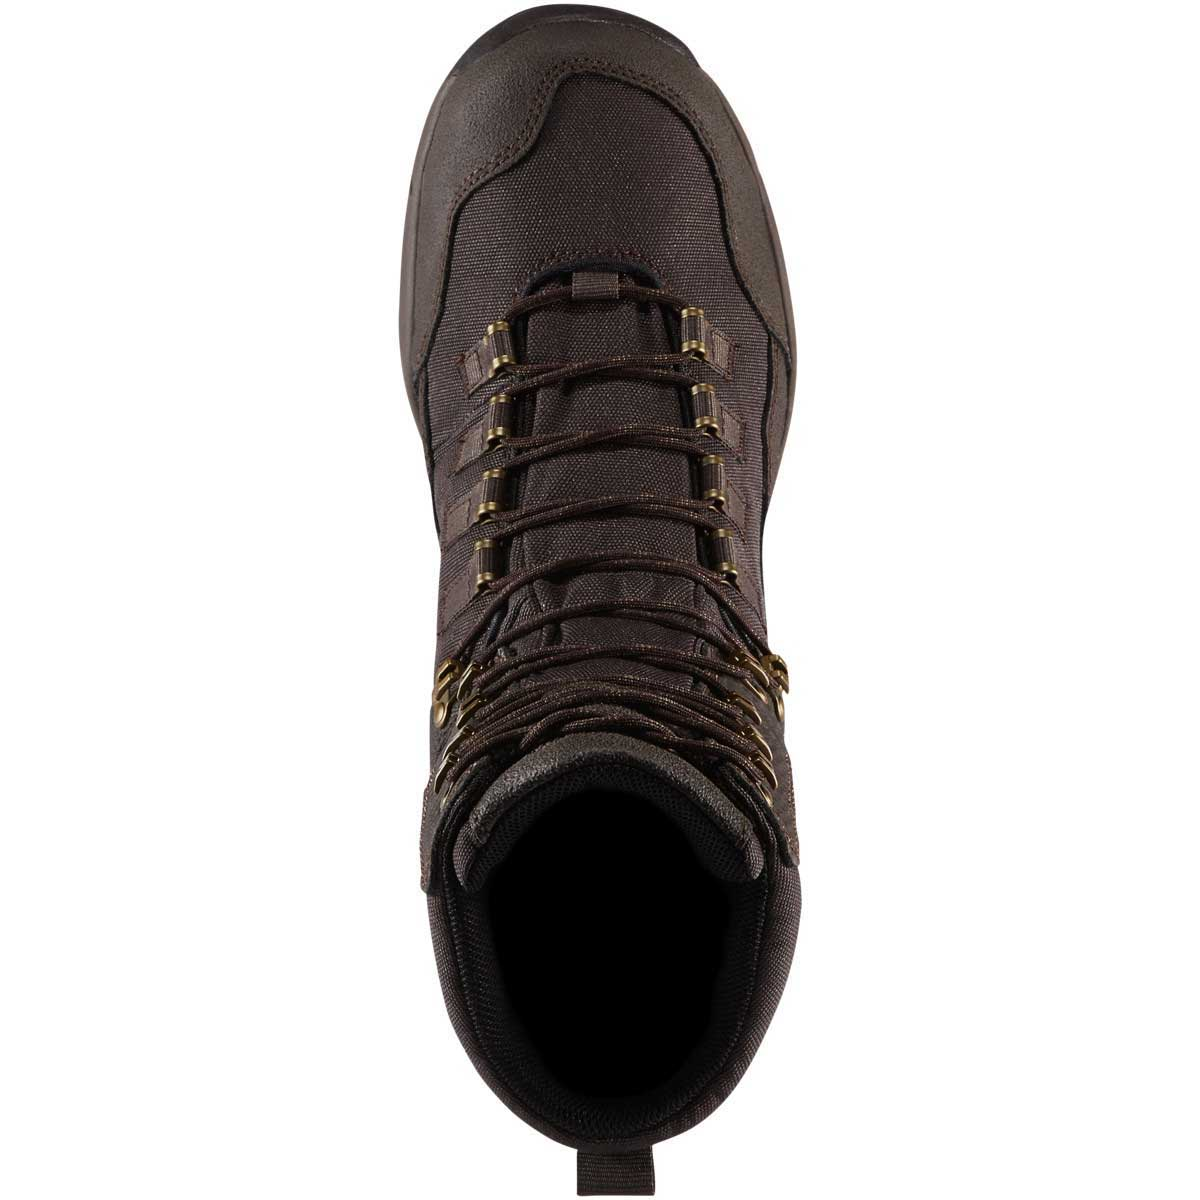 """Danner Vital 8"""" Brown Insulated 400G Hunting Boots_3.jpg"""